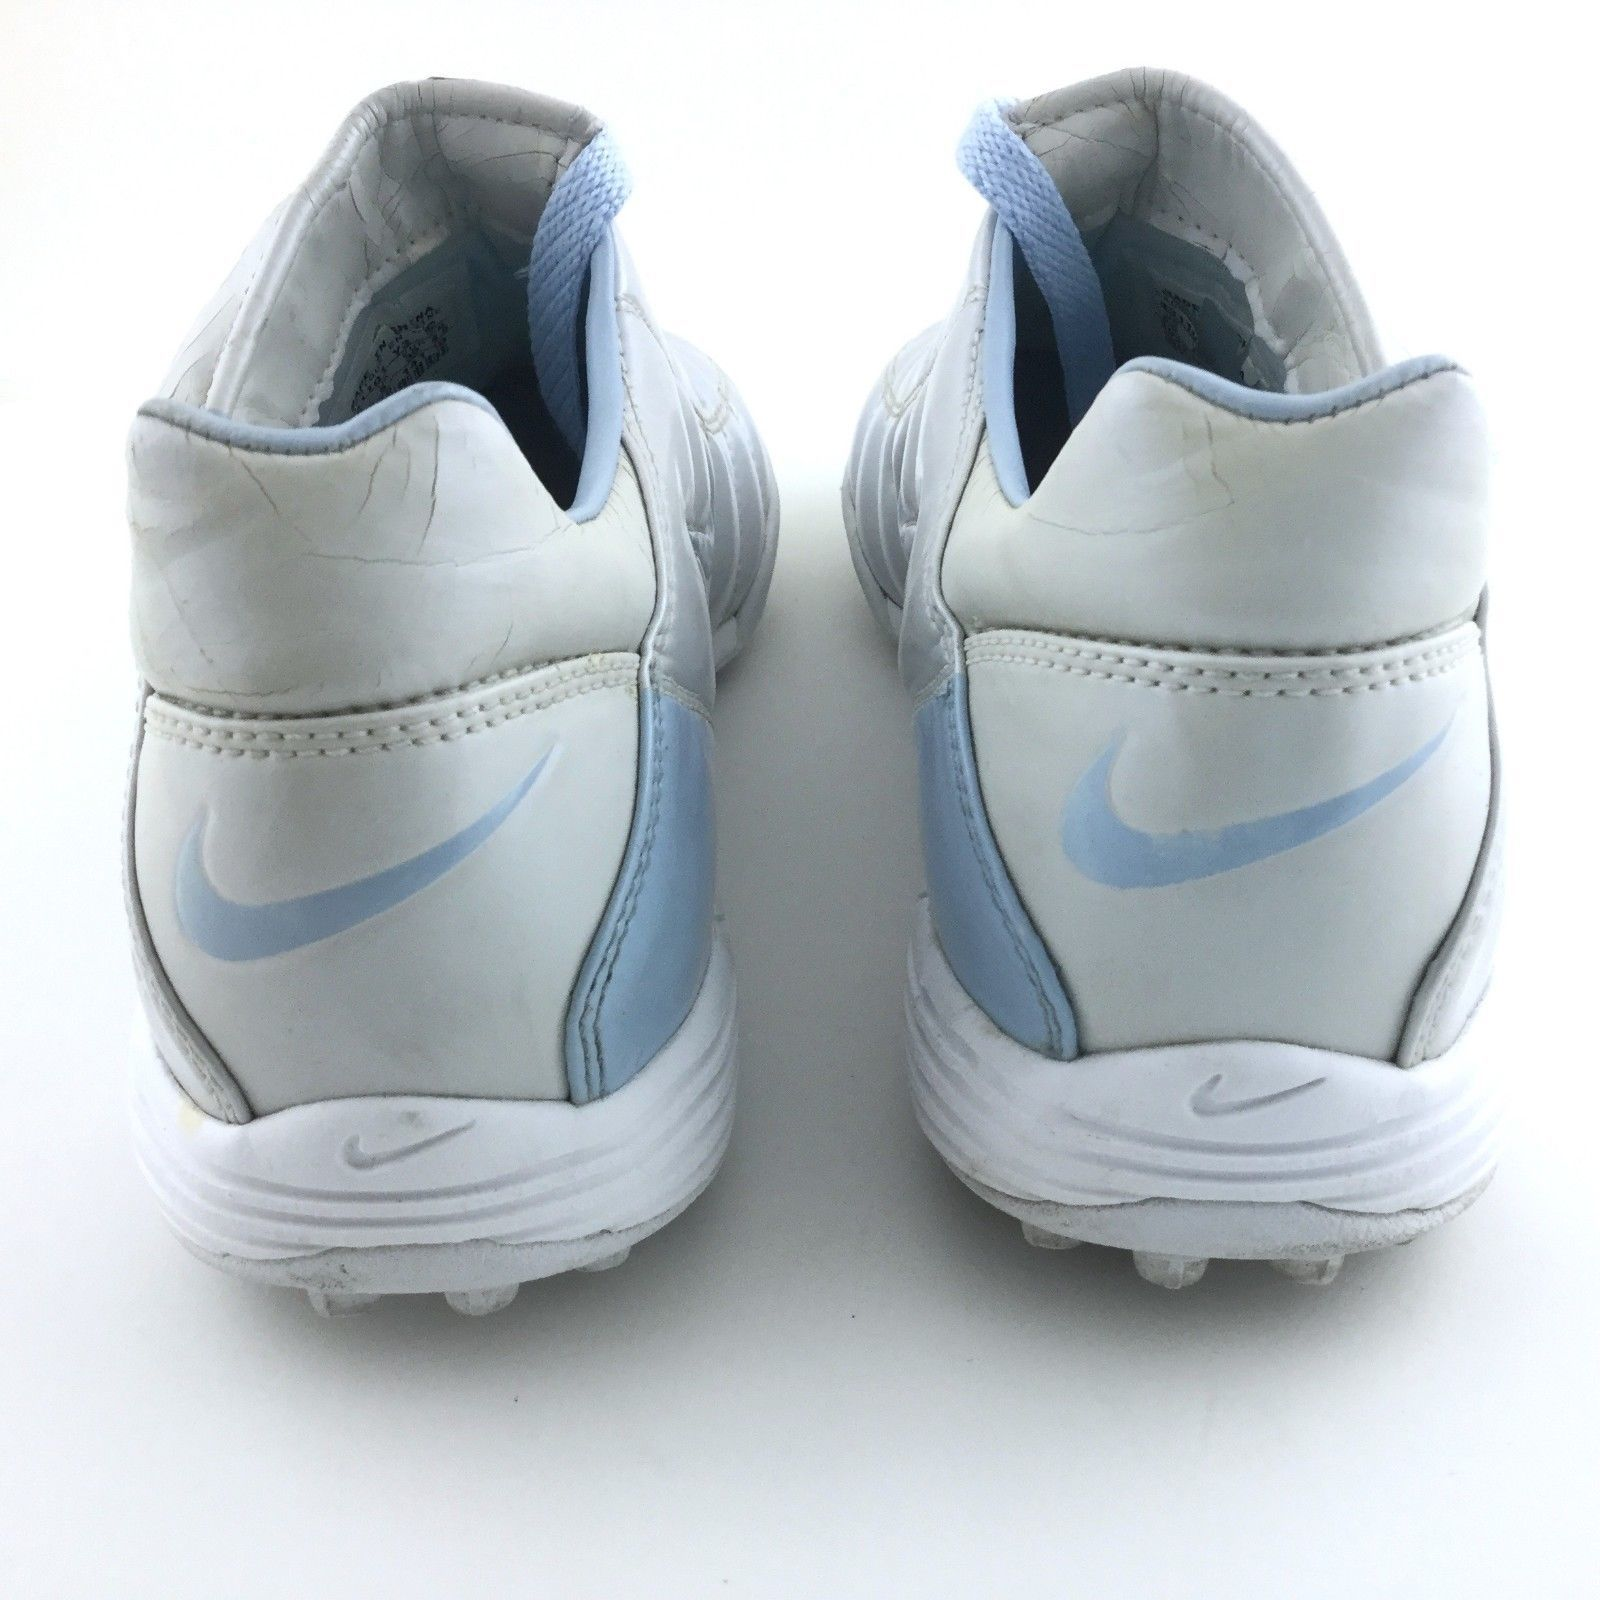 8a37cbc048925 Vintage Nike Total 90 Turf Soccer Shoes 031101 Size 6.5 Youth Silver RARE  Retro